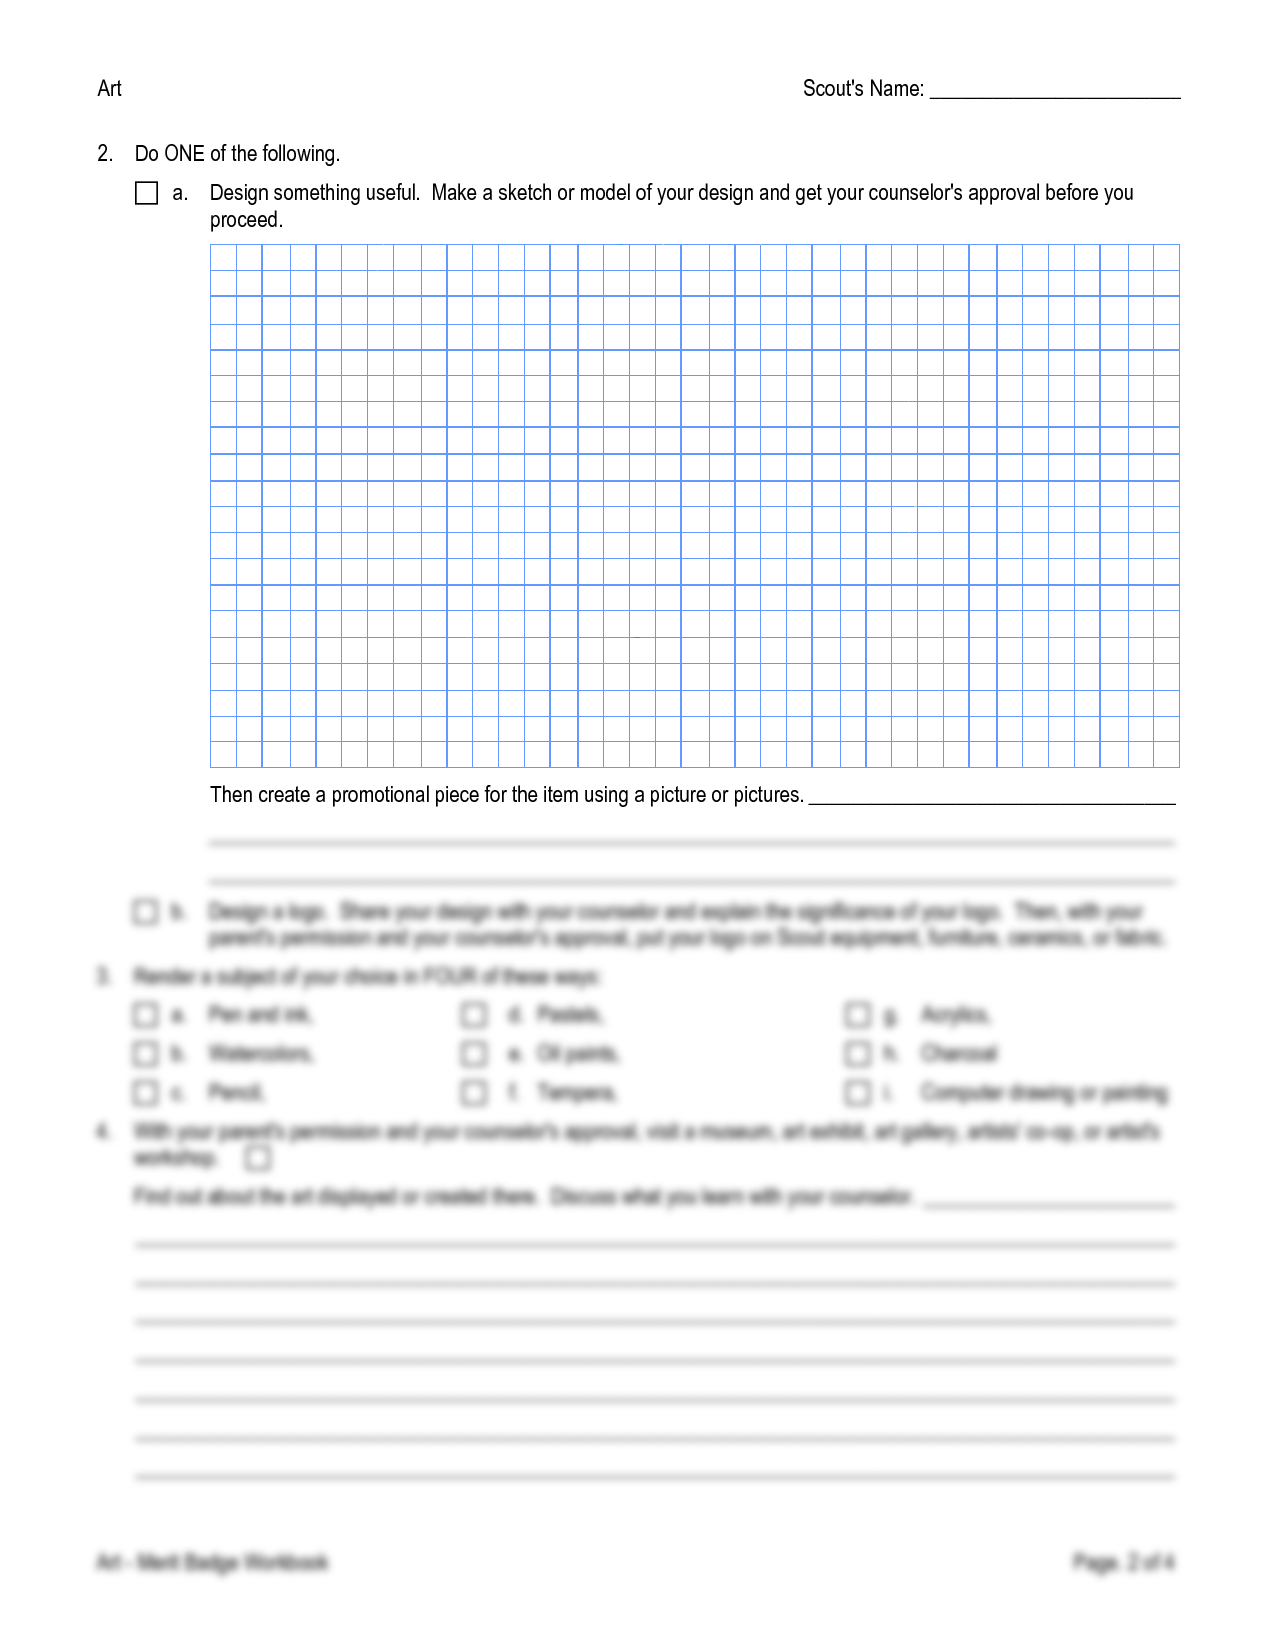 Workbooks citizenship in the world merit badge workbook : worksheet. Art Merit Badge Worksheet. Grass Fedjp Worksheet Study Site